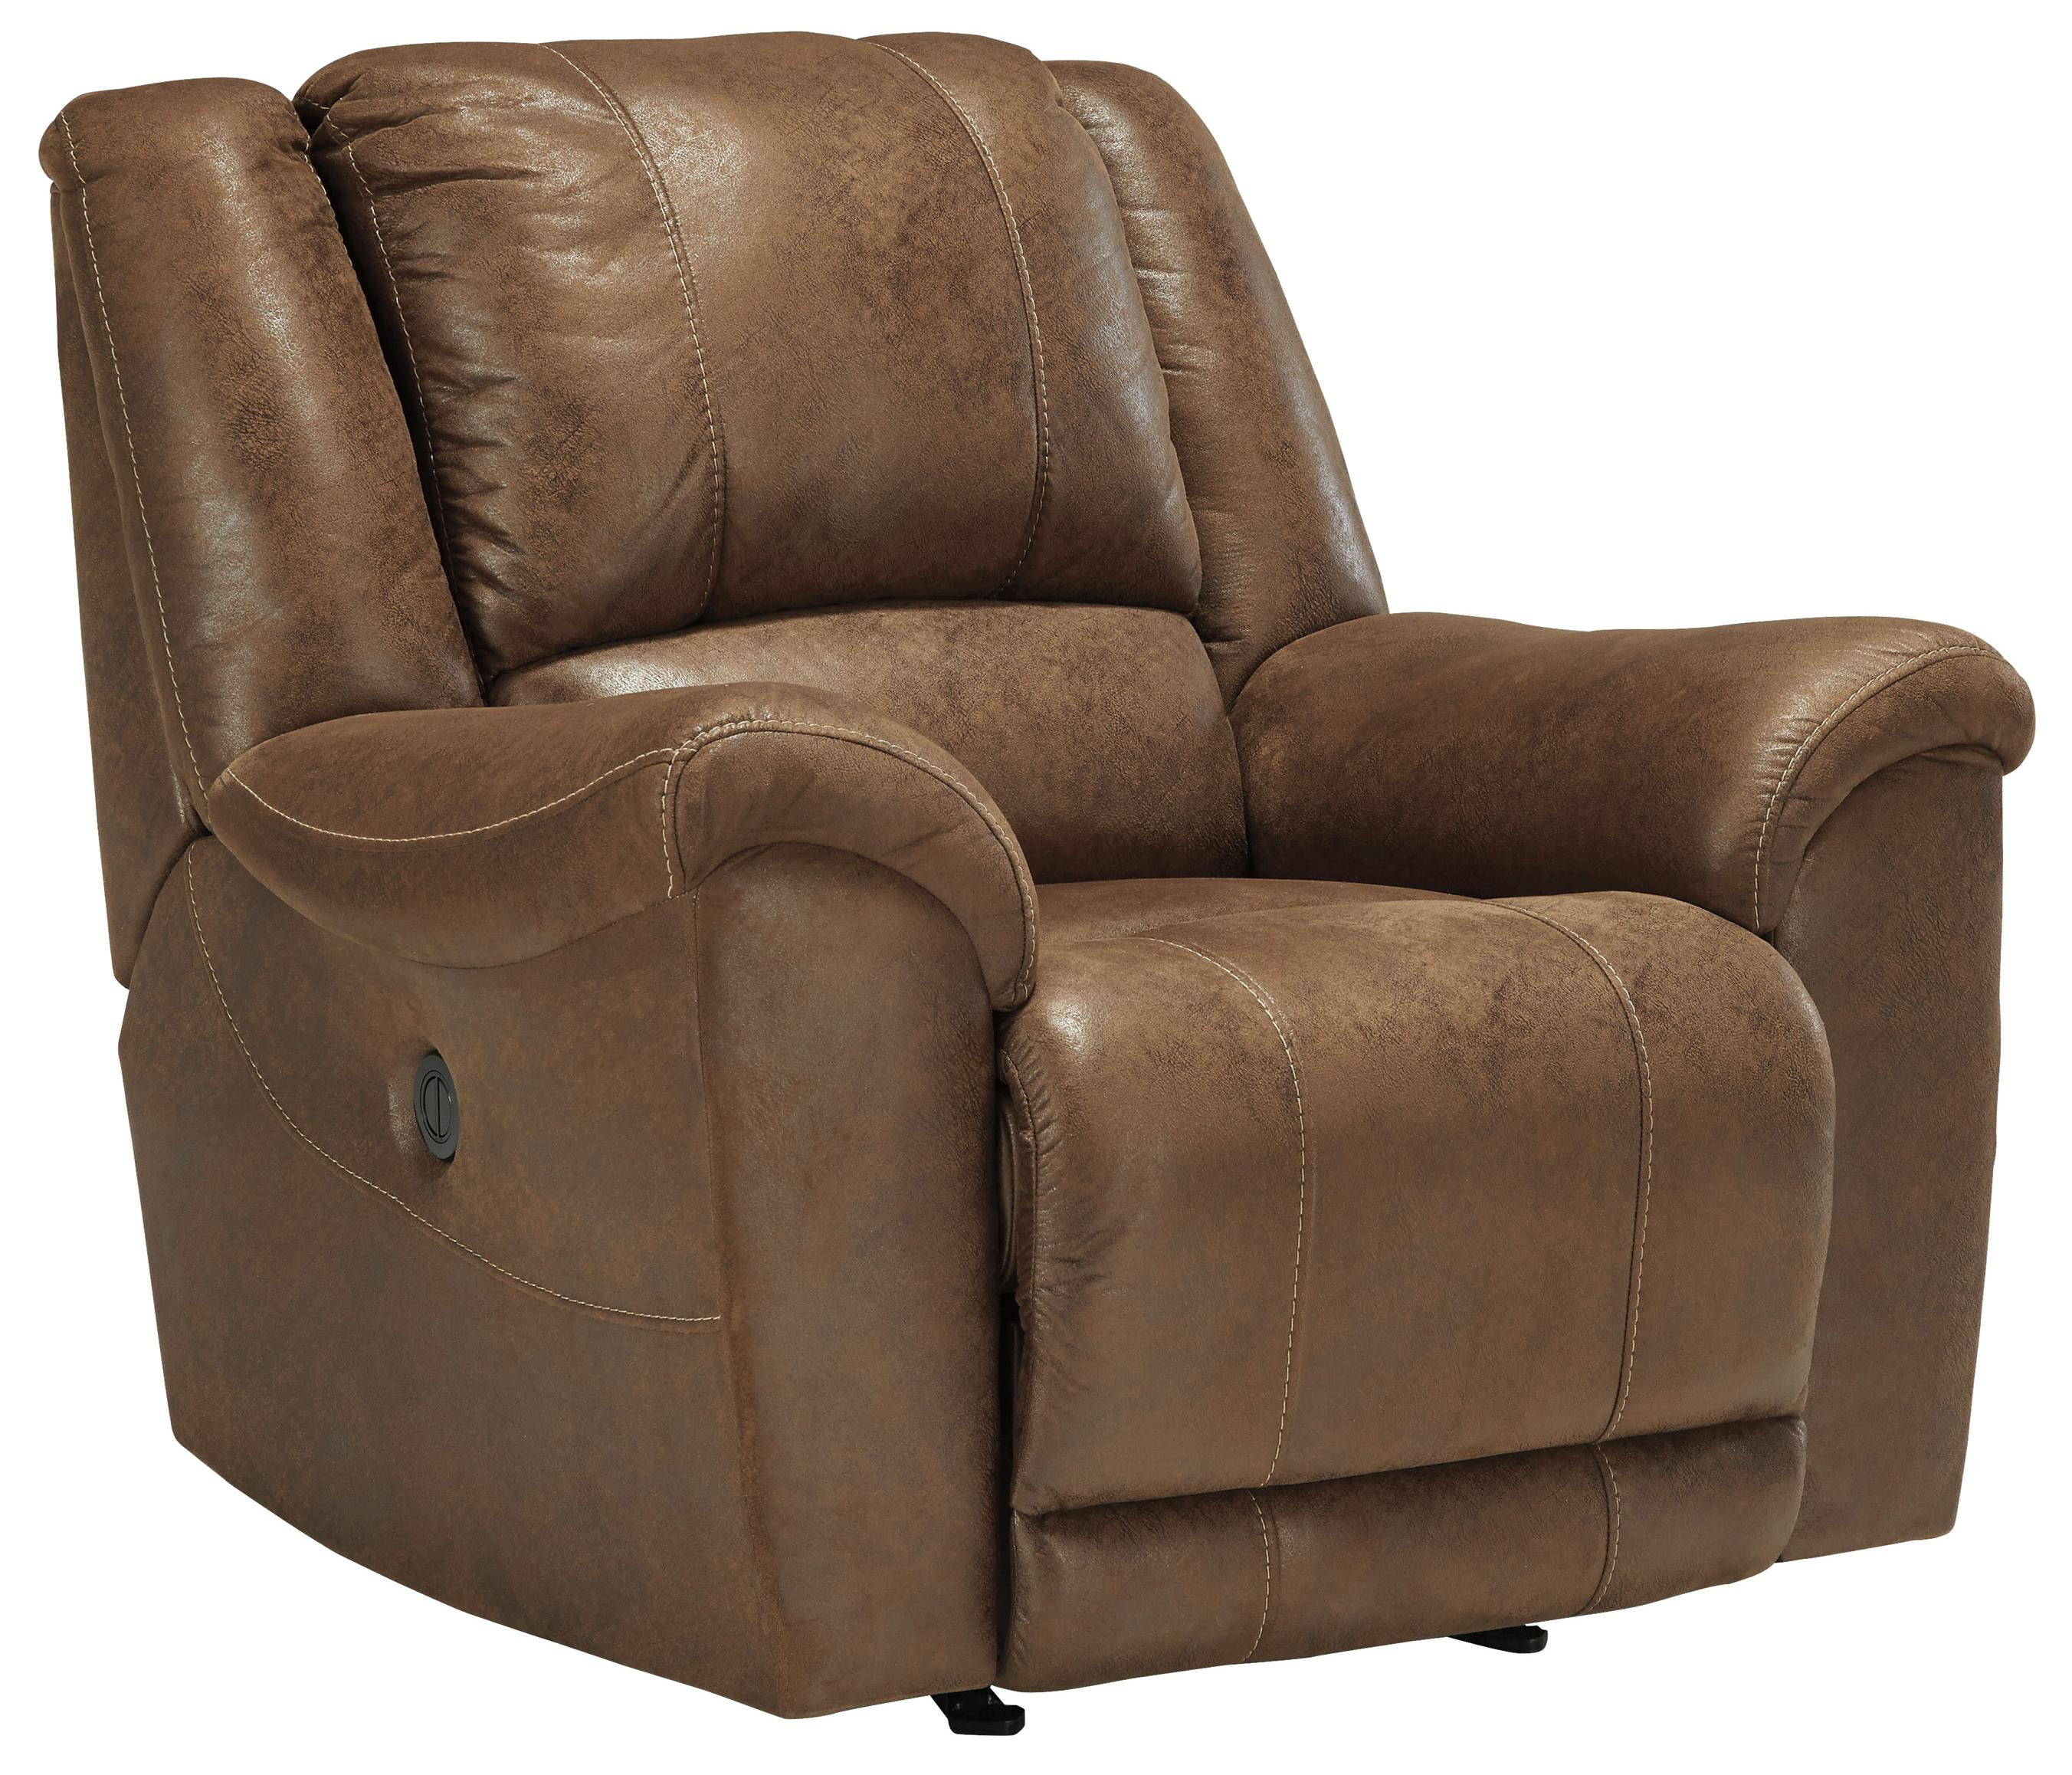 Benchcraft Niarobi Rocker Recliner - Item Number: 4060125